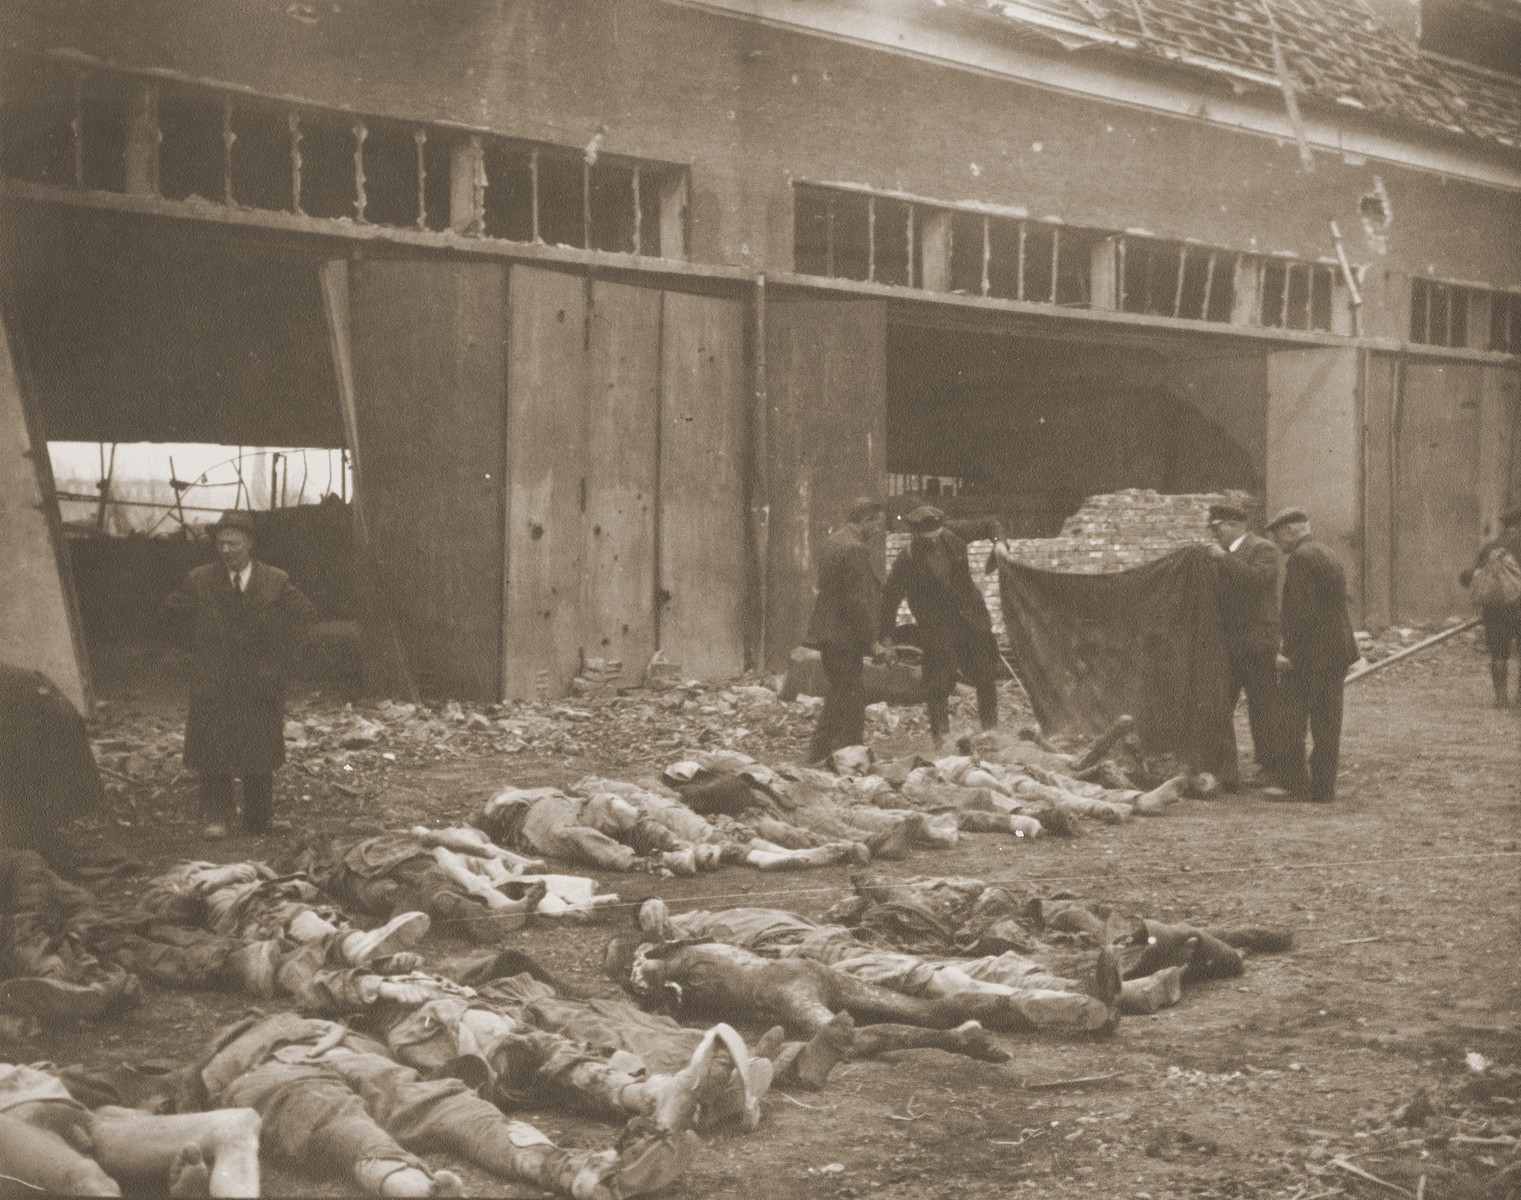 German civilians cover the bodies of prisoners killed in the Nordhausen concentration camp.  The corpses have been laid out in long rows outside the central barracks (Boelke Kaserne).